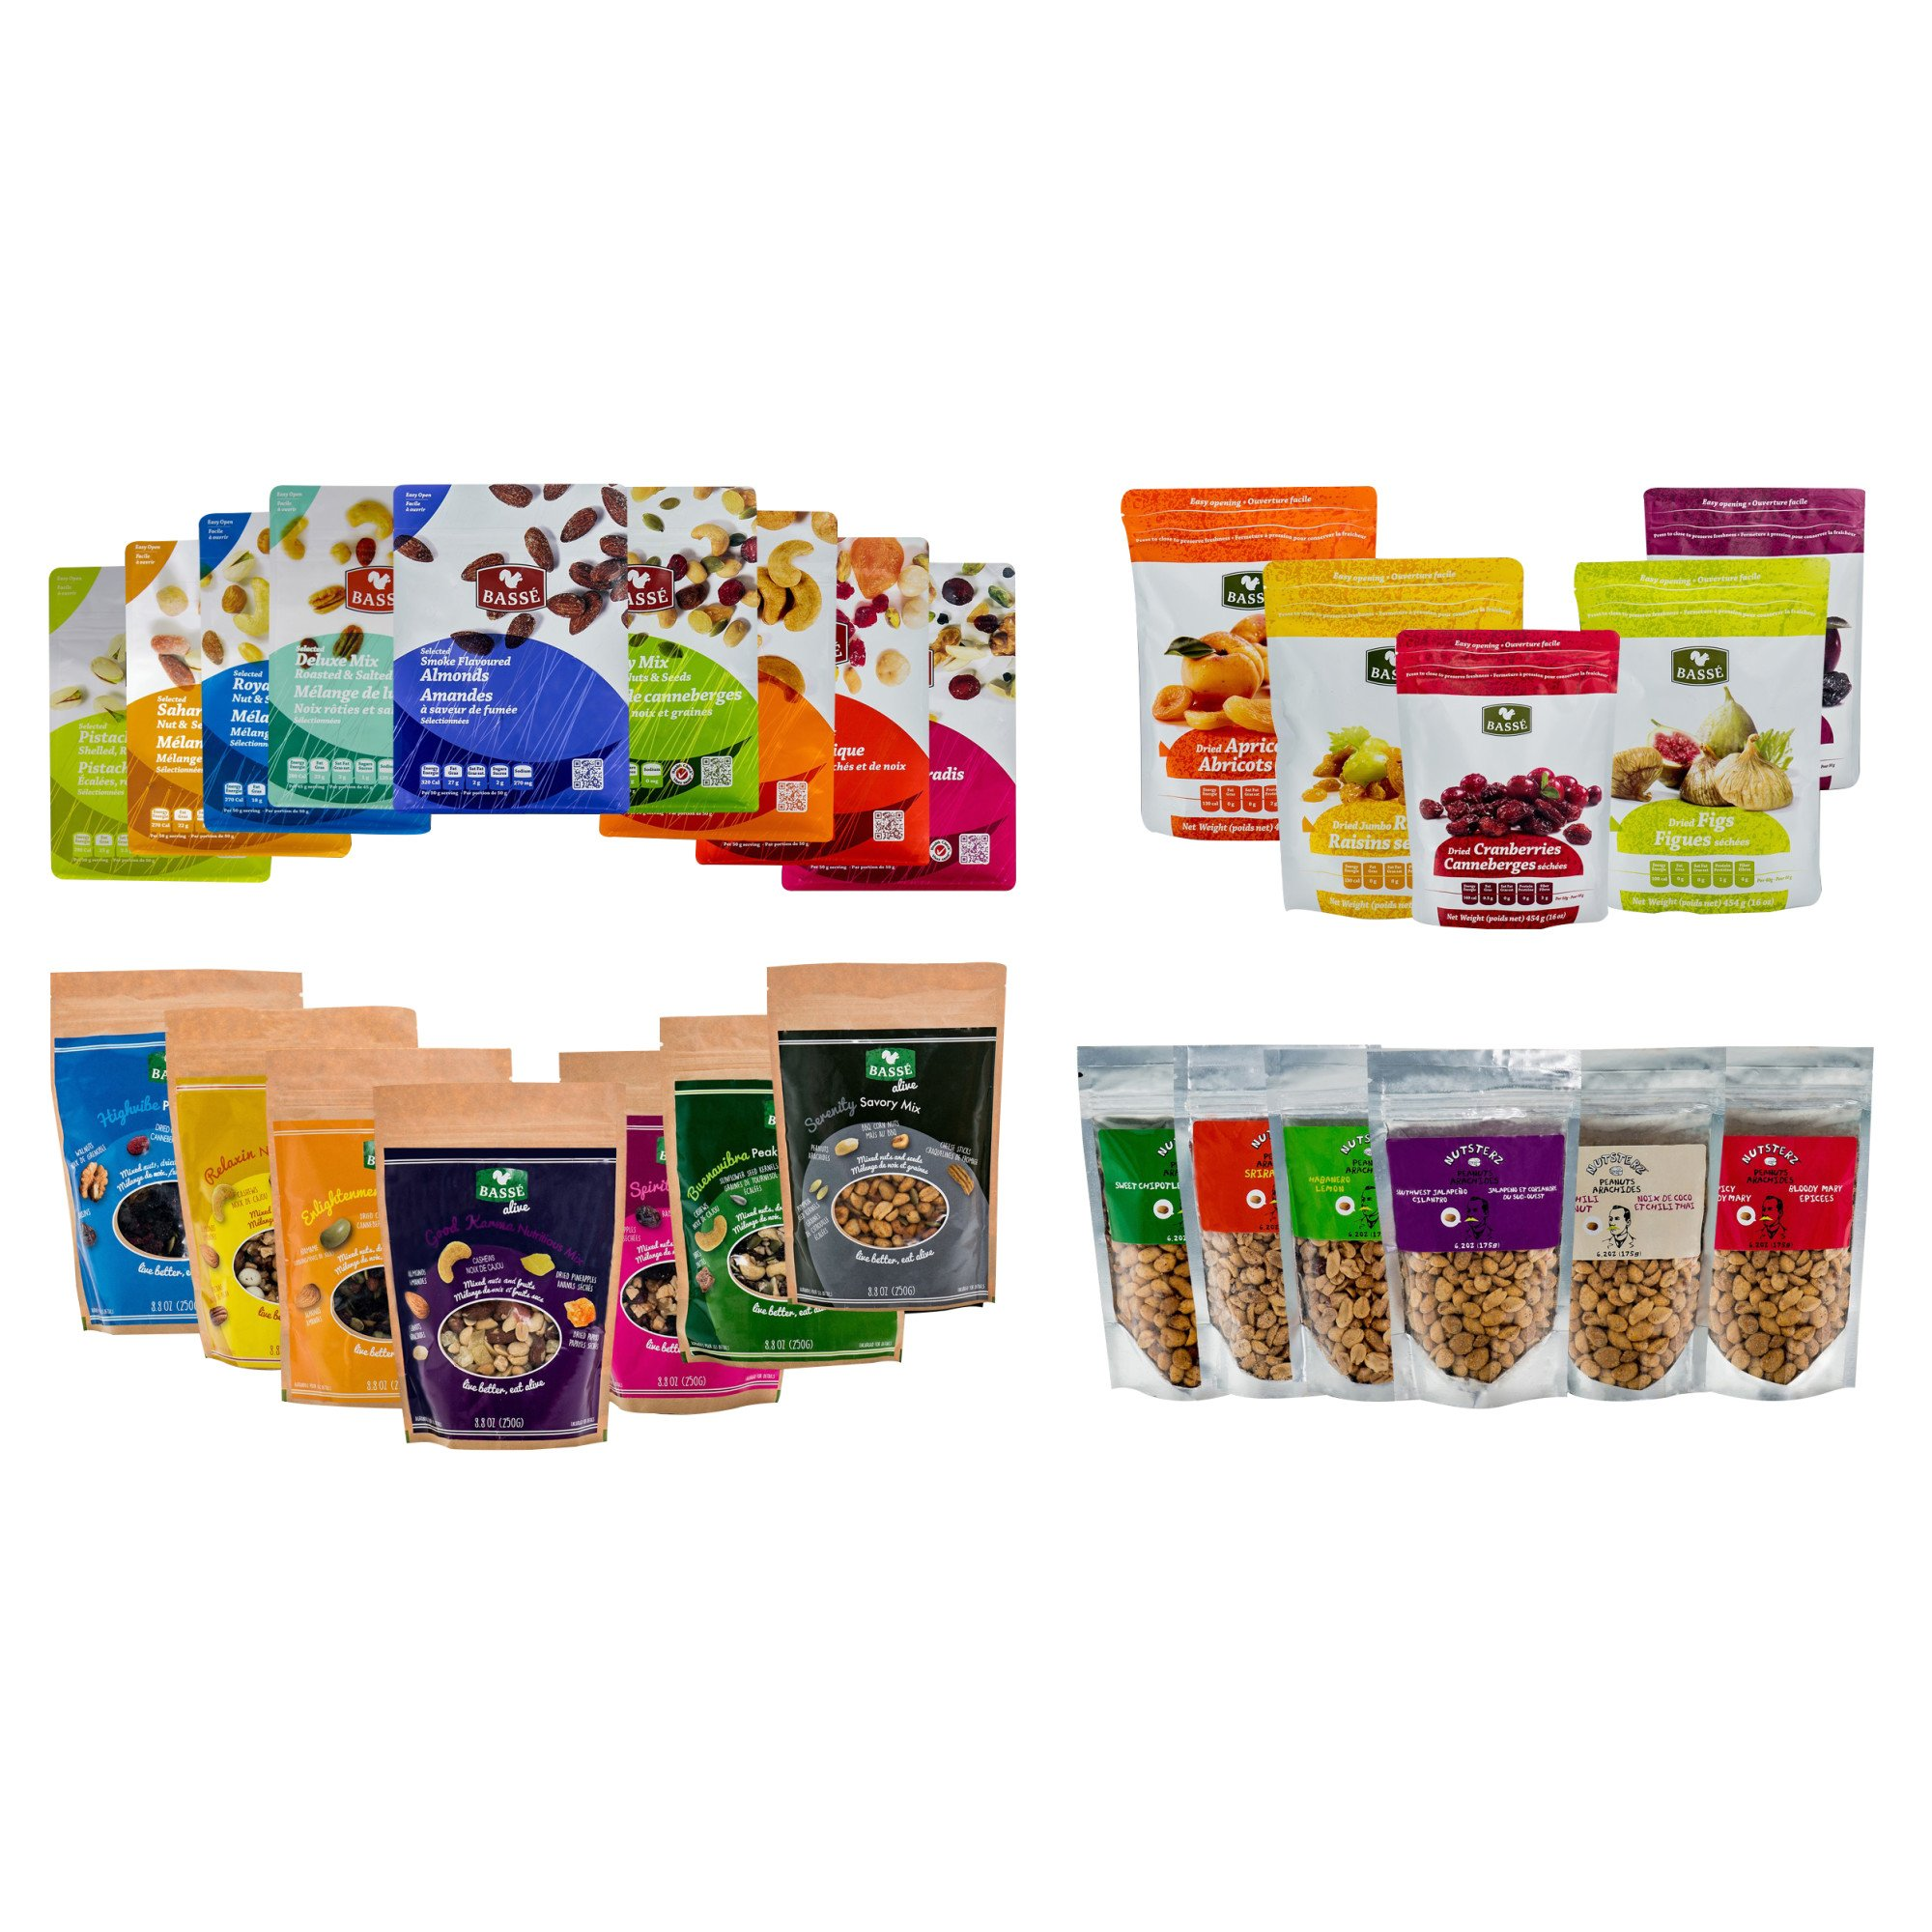 Mega Snack Pack, Over 15lbs of Dried Fruit, Trail Mixes, Nutsterz Spicy Peanuts, and Assorted Basse Nuts - Variety Pack of Superfoods and Healthy Snacks for Good Energy & Nutrition (27 Bags Total) by Basse